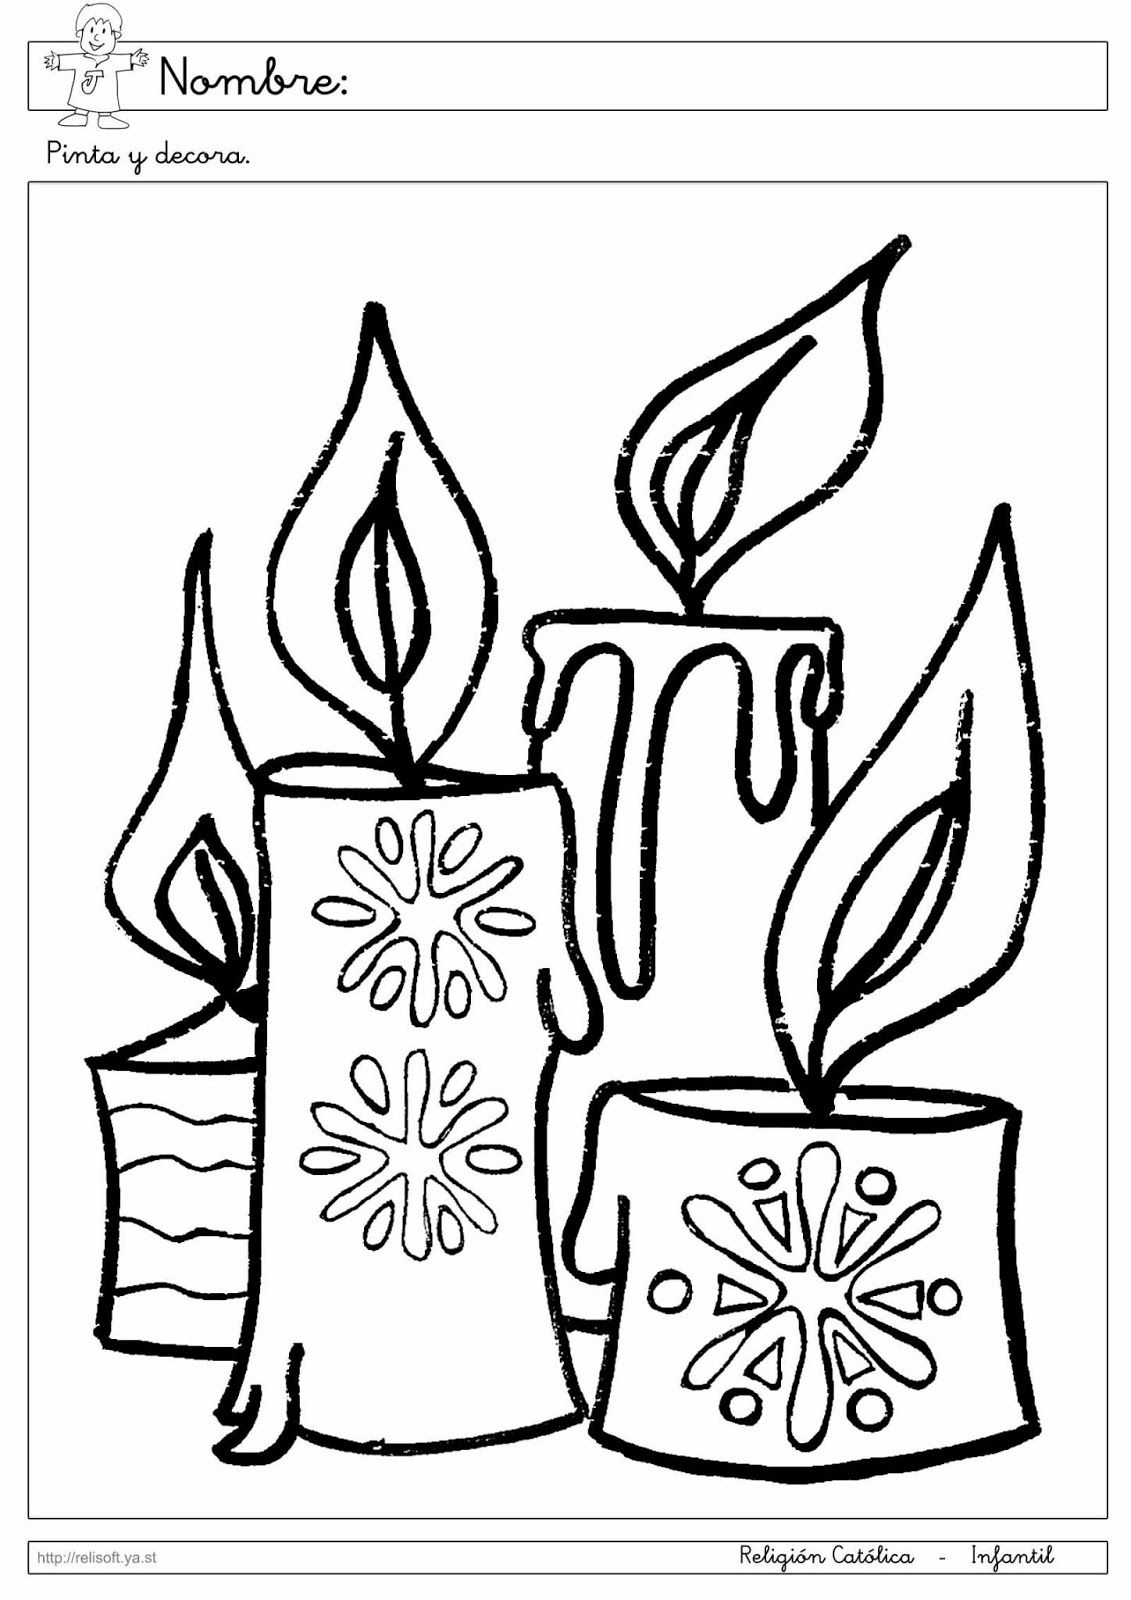 Pin by Mary on CP - Candle/Lantern   Pinterest   Religion and Embroidery